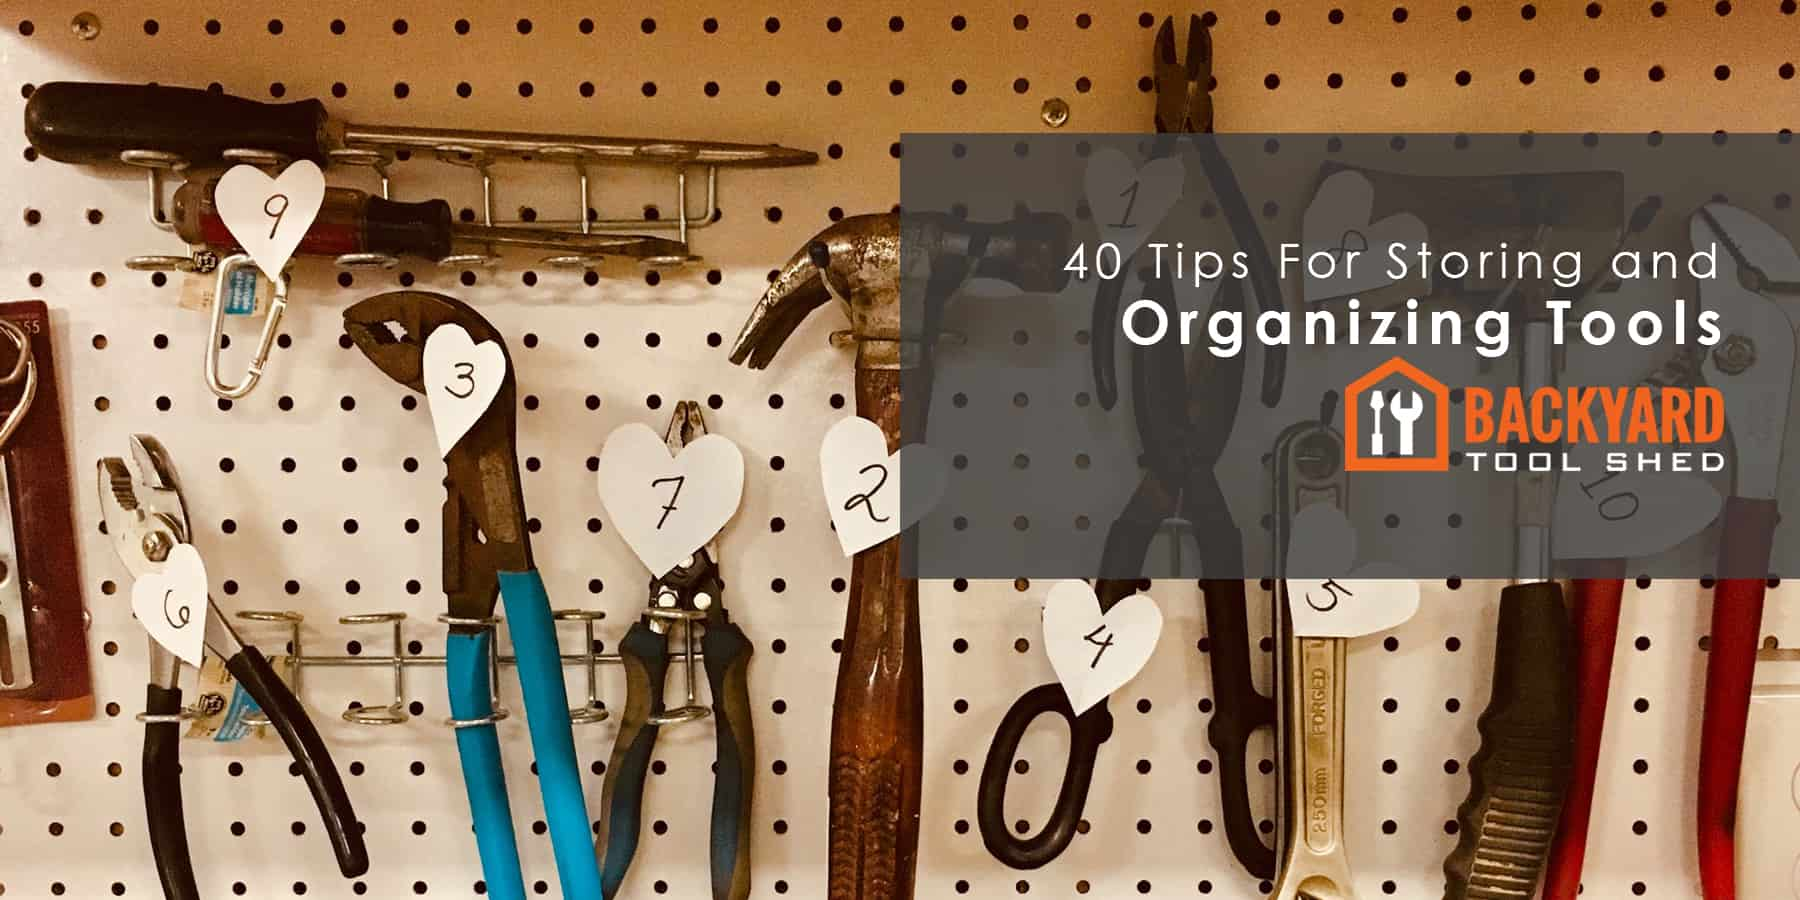 Important Tips for Storing and Organizing Tools